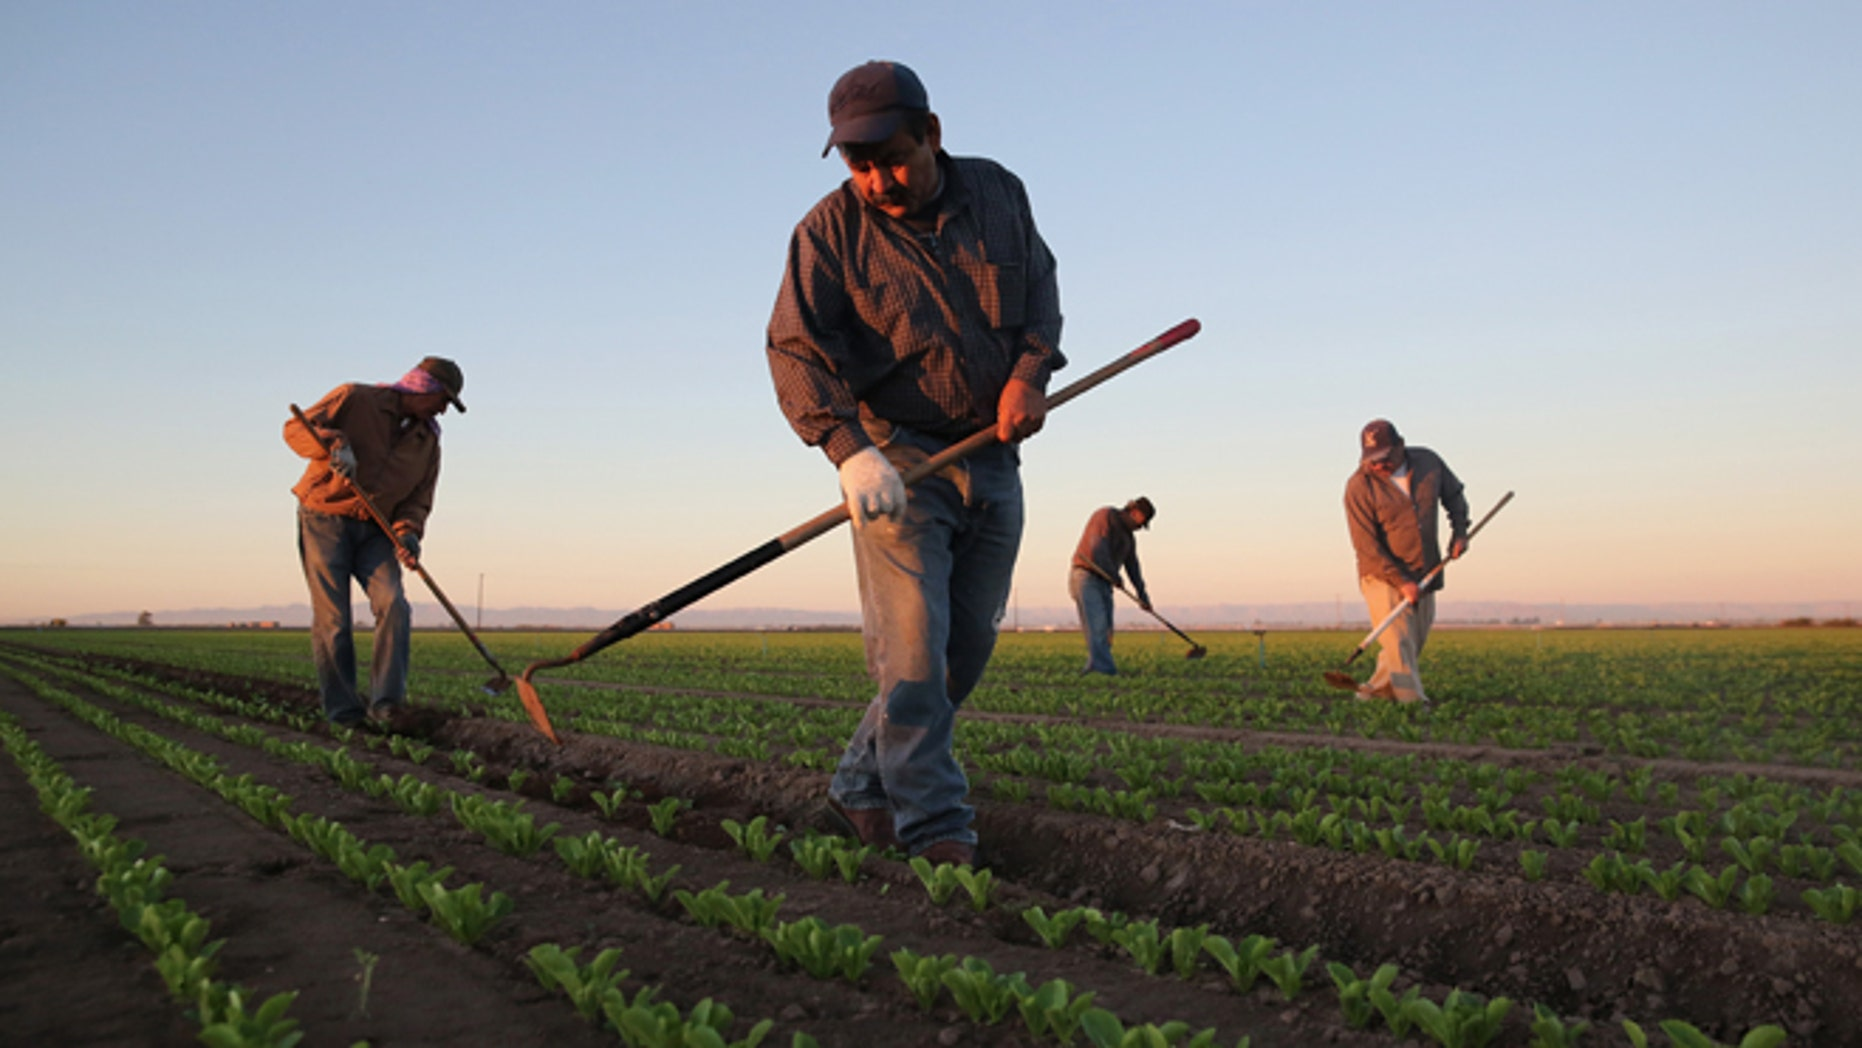 HOLTVILLE, CA - OCTOBER 08:  Mexican agricultural workers cultivate romaine lettuce on a farm on October 8, 2013 in Holtville, California. Thousands of Mexican workers cross the border legally each night from Mexicali, Mexico into Calexico, CA, where they pick up work as agricultural day laborers in California's fertile Imperial Valley. Although the Imperial Valley, irrigated from water diverted from the Colorado River, is one of the most productive agricultural areas in the United States, it has one of the highest unemployment rates in California, at more than 25 percent. Mexican farm workers commute each day from Mexicali to work in the fields for about $9 an hour, which many local U.S. residents shun as too low pay.  (Photo by John Moore/Getty Images)